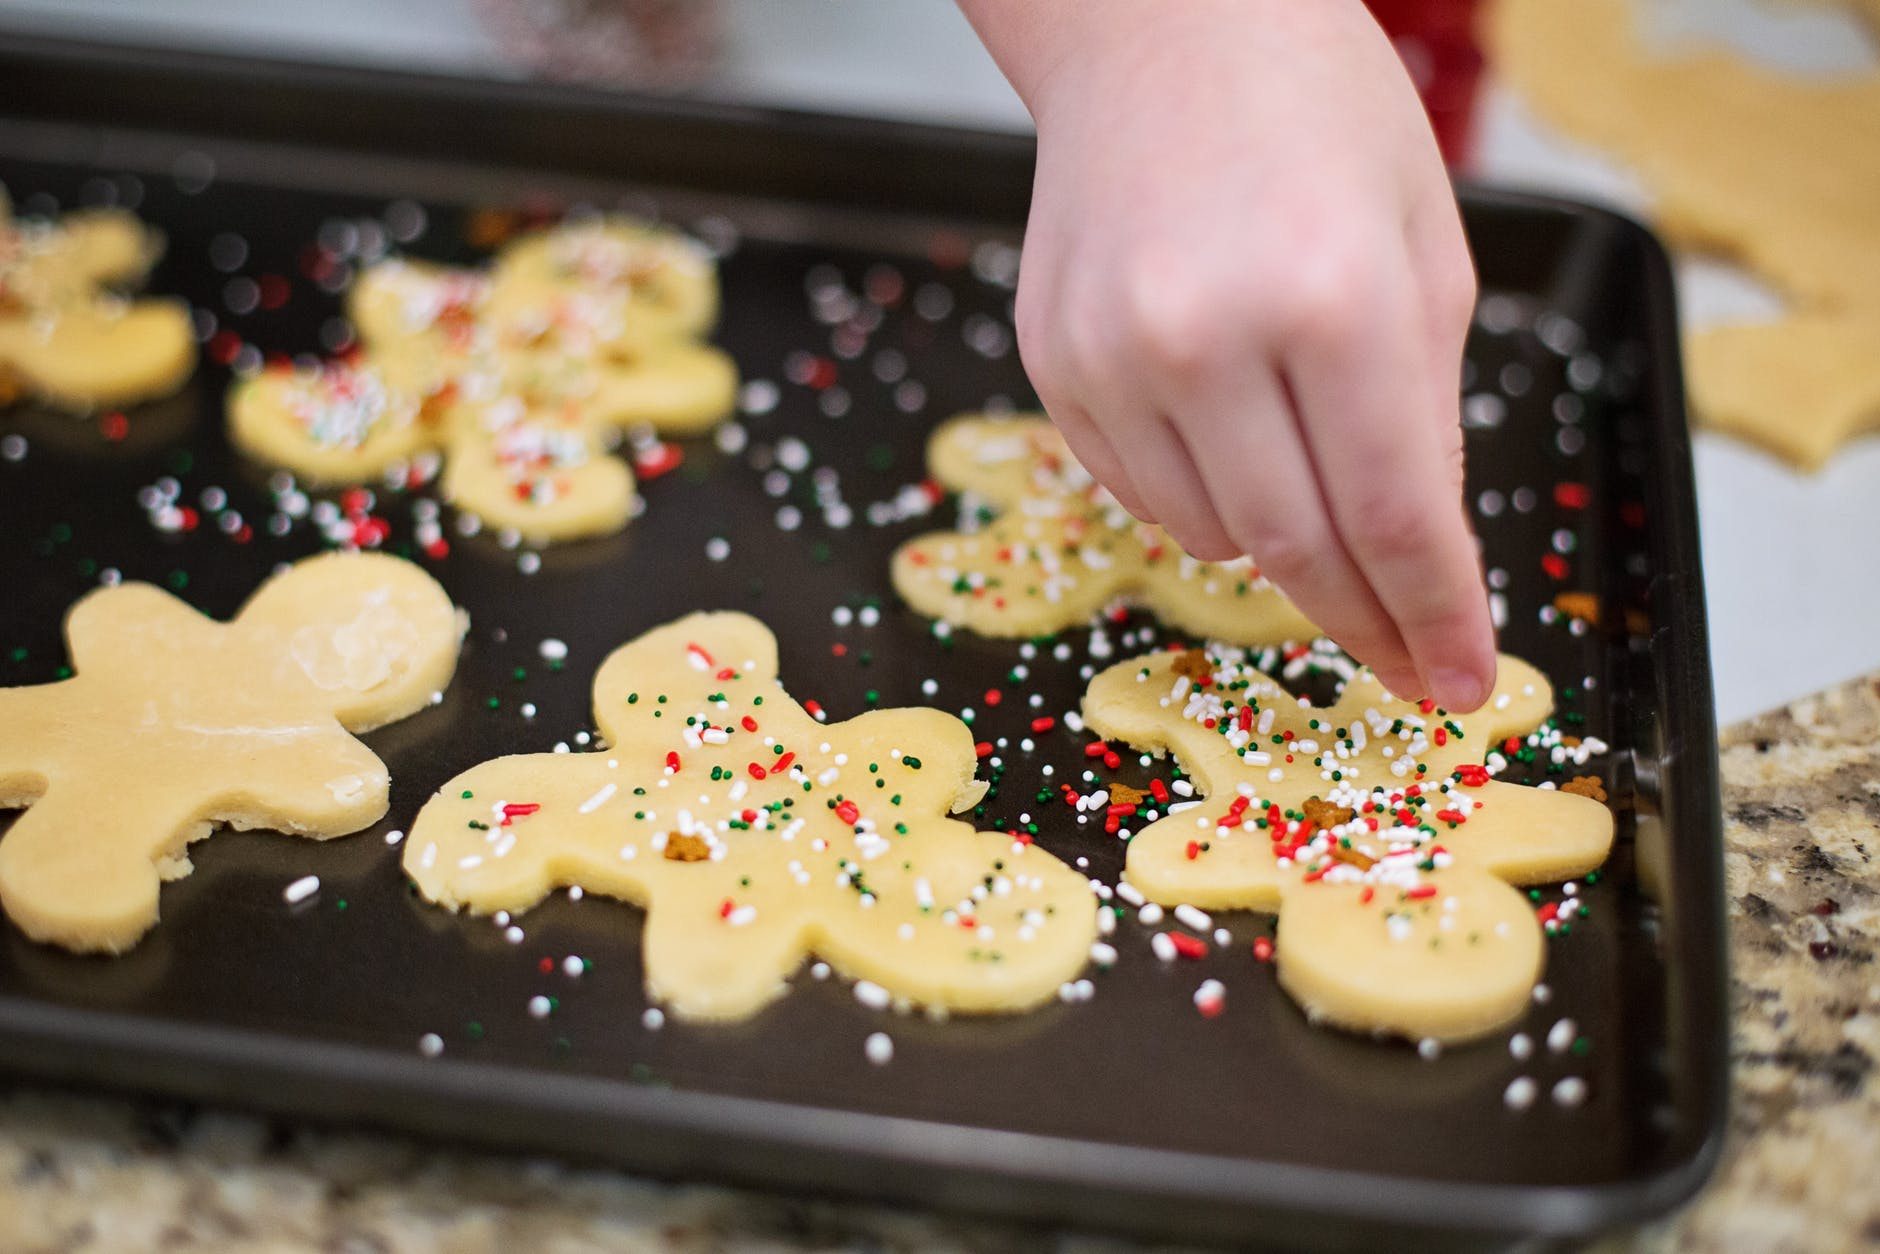 child's hand decorating cookies with sprinkles